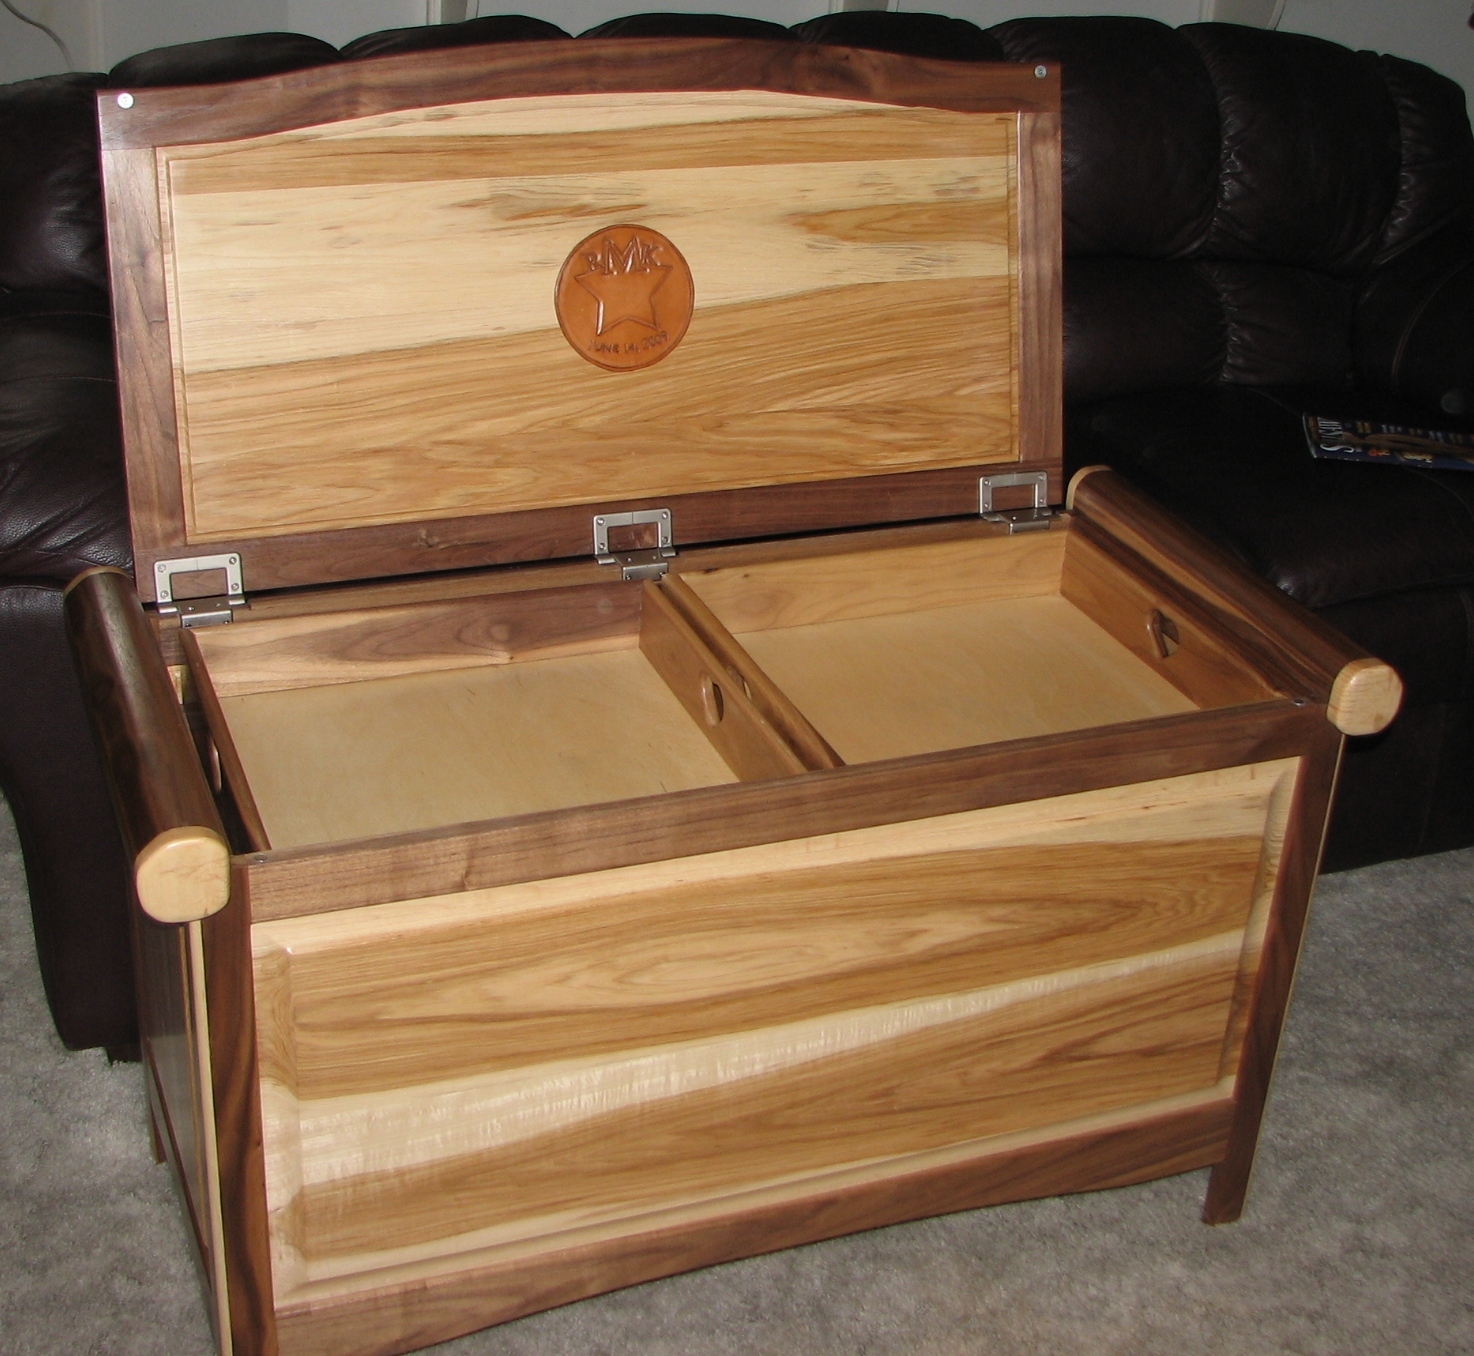 How To Build A Cedar Hope Chest